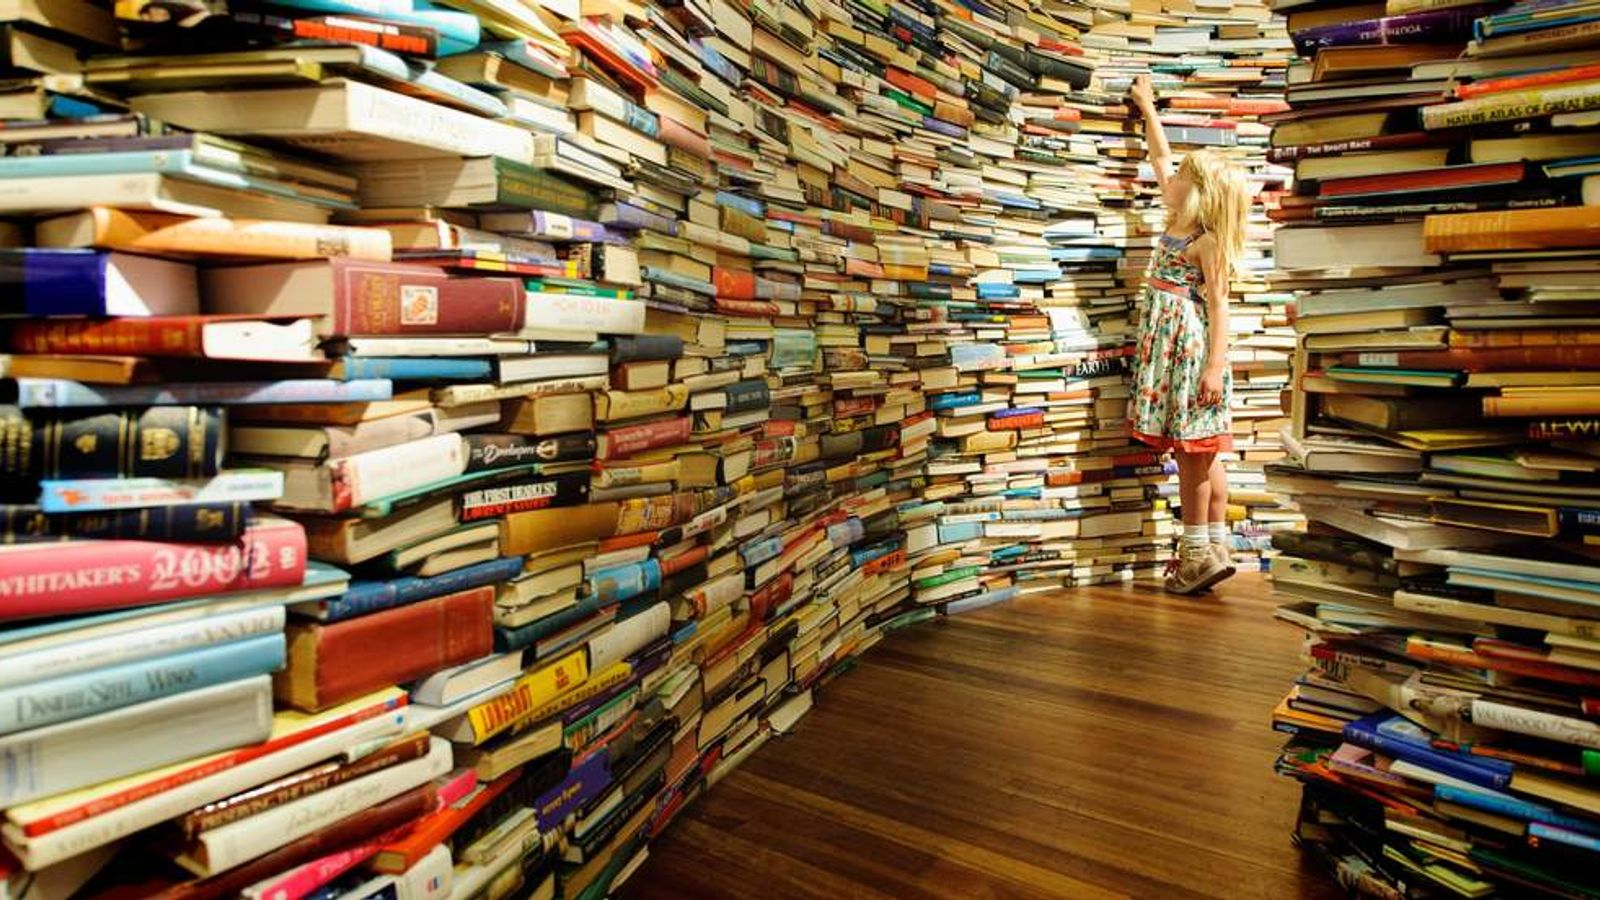 Leona Ryan, from Norfolk, explores the 'aMAZEme' installation, a maze constructed of 250,000 books by Brazilian artists Marcos Saboya and Gualter Pupo, at the Royal Festival Hall, on the southbank, in central London.